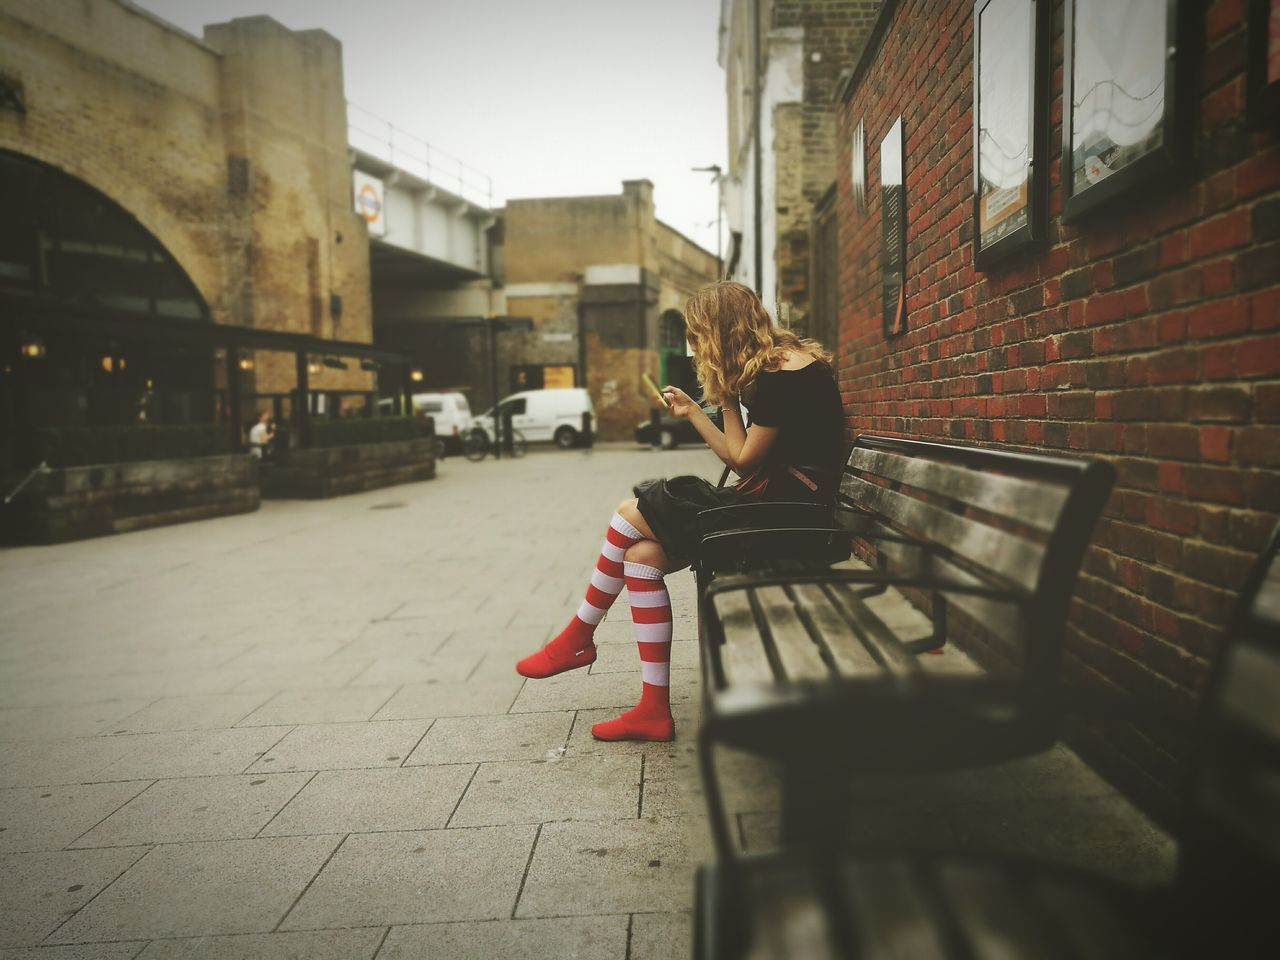 Urbanphotography Streetphotography London Hoxton City Life Street Photography Seated Lady Seated Woman Seated